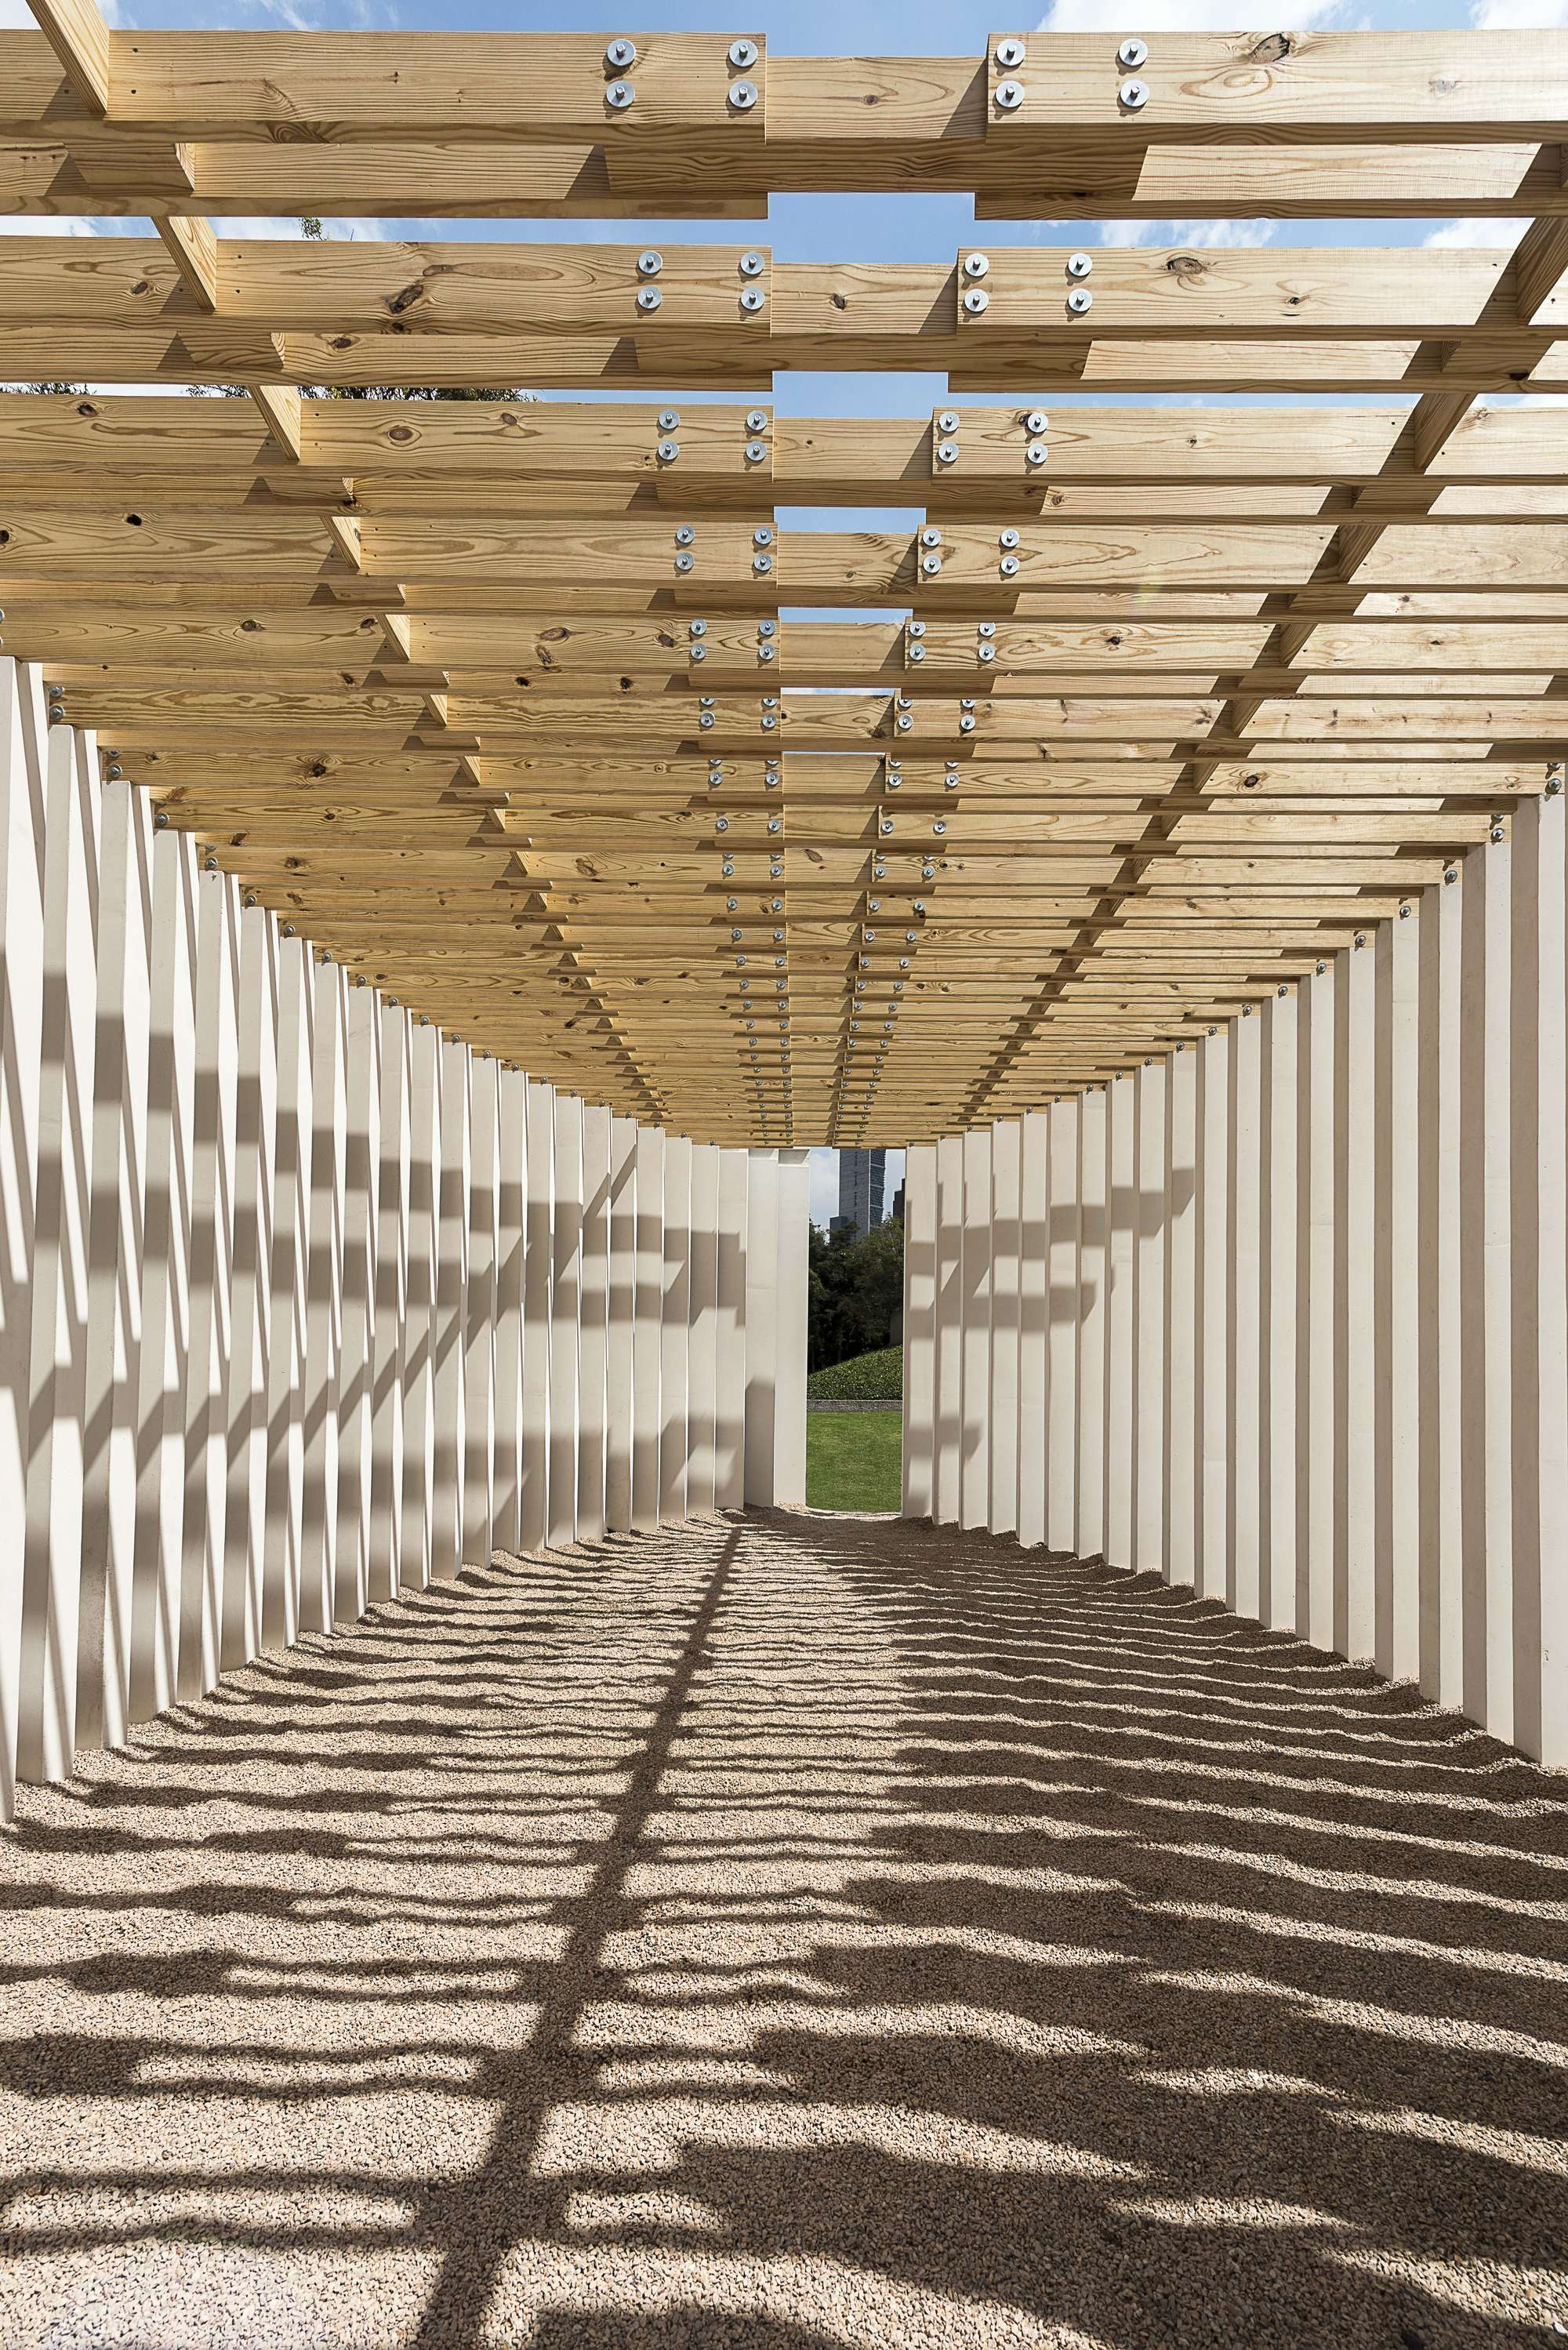 Materia Completes Concrete And Wood Pavilion For Design